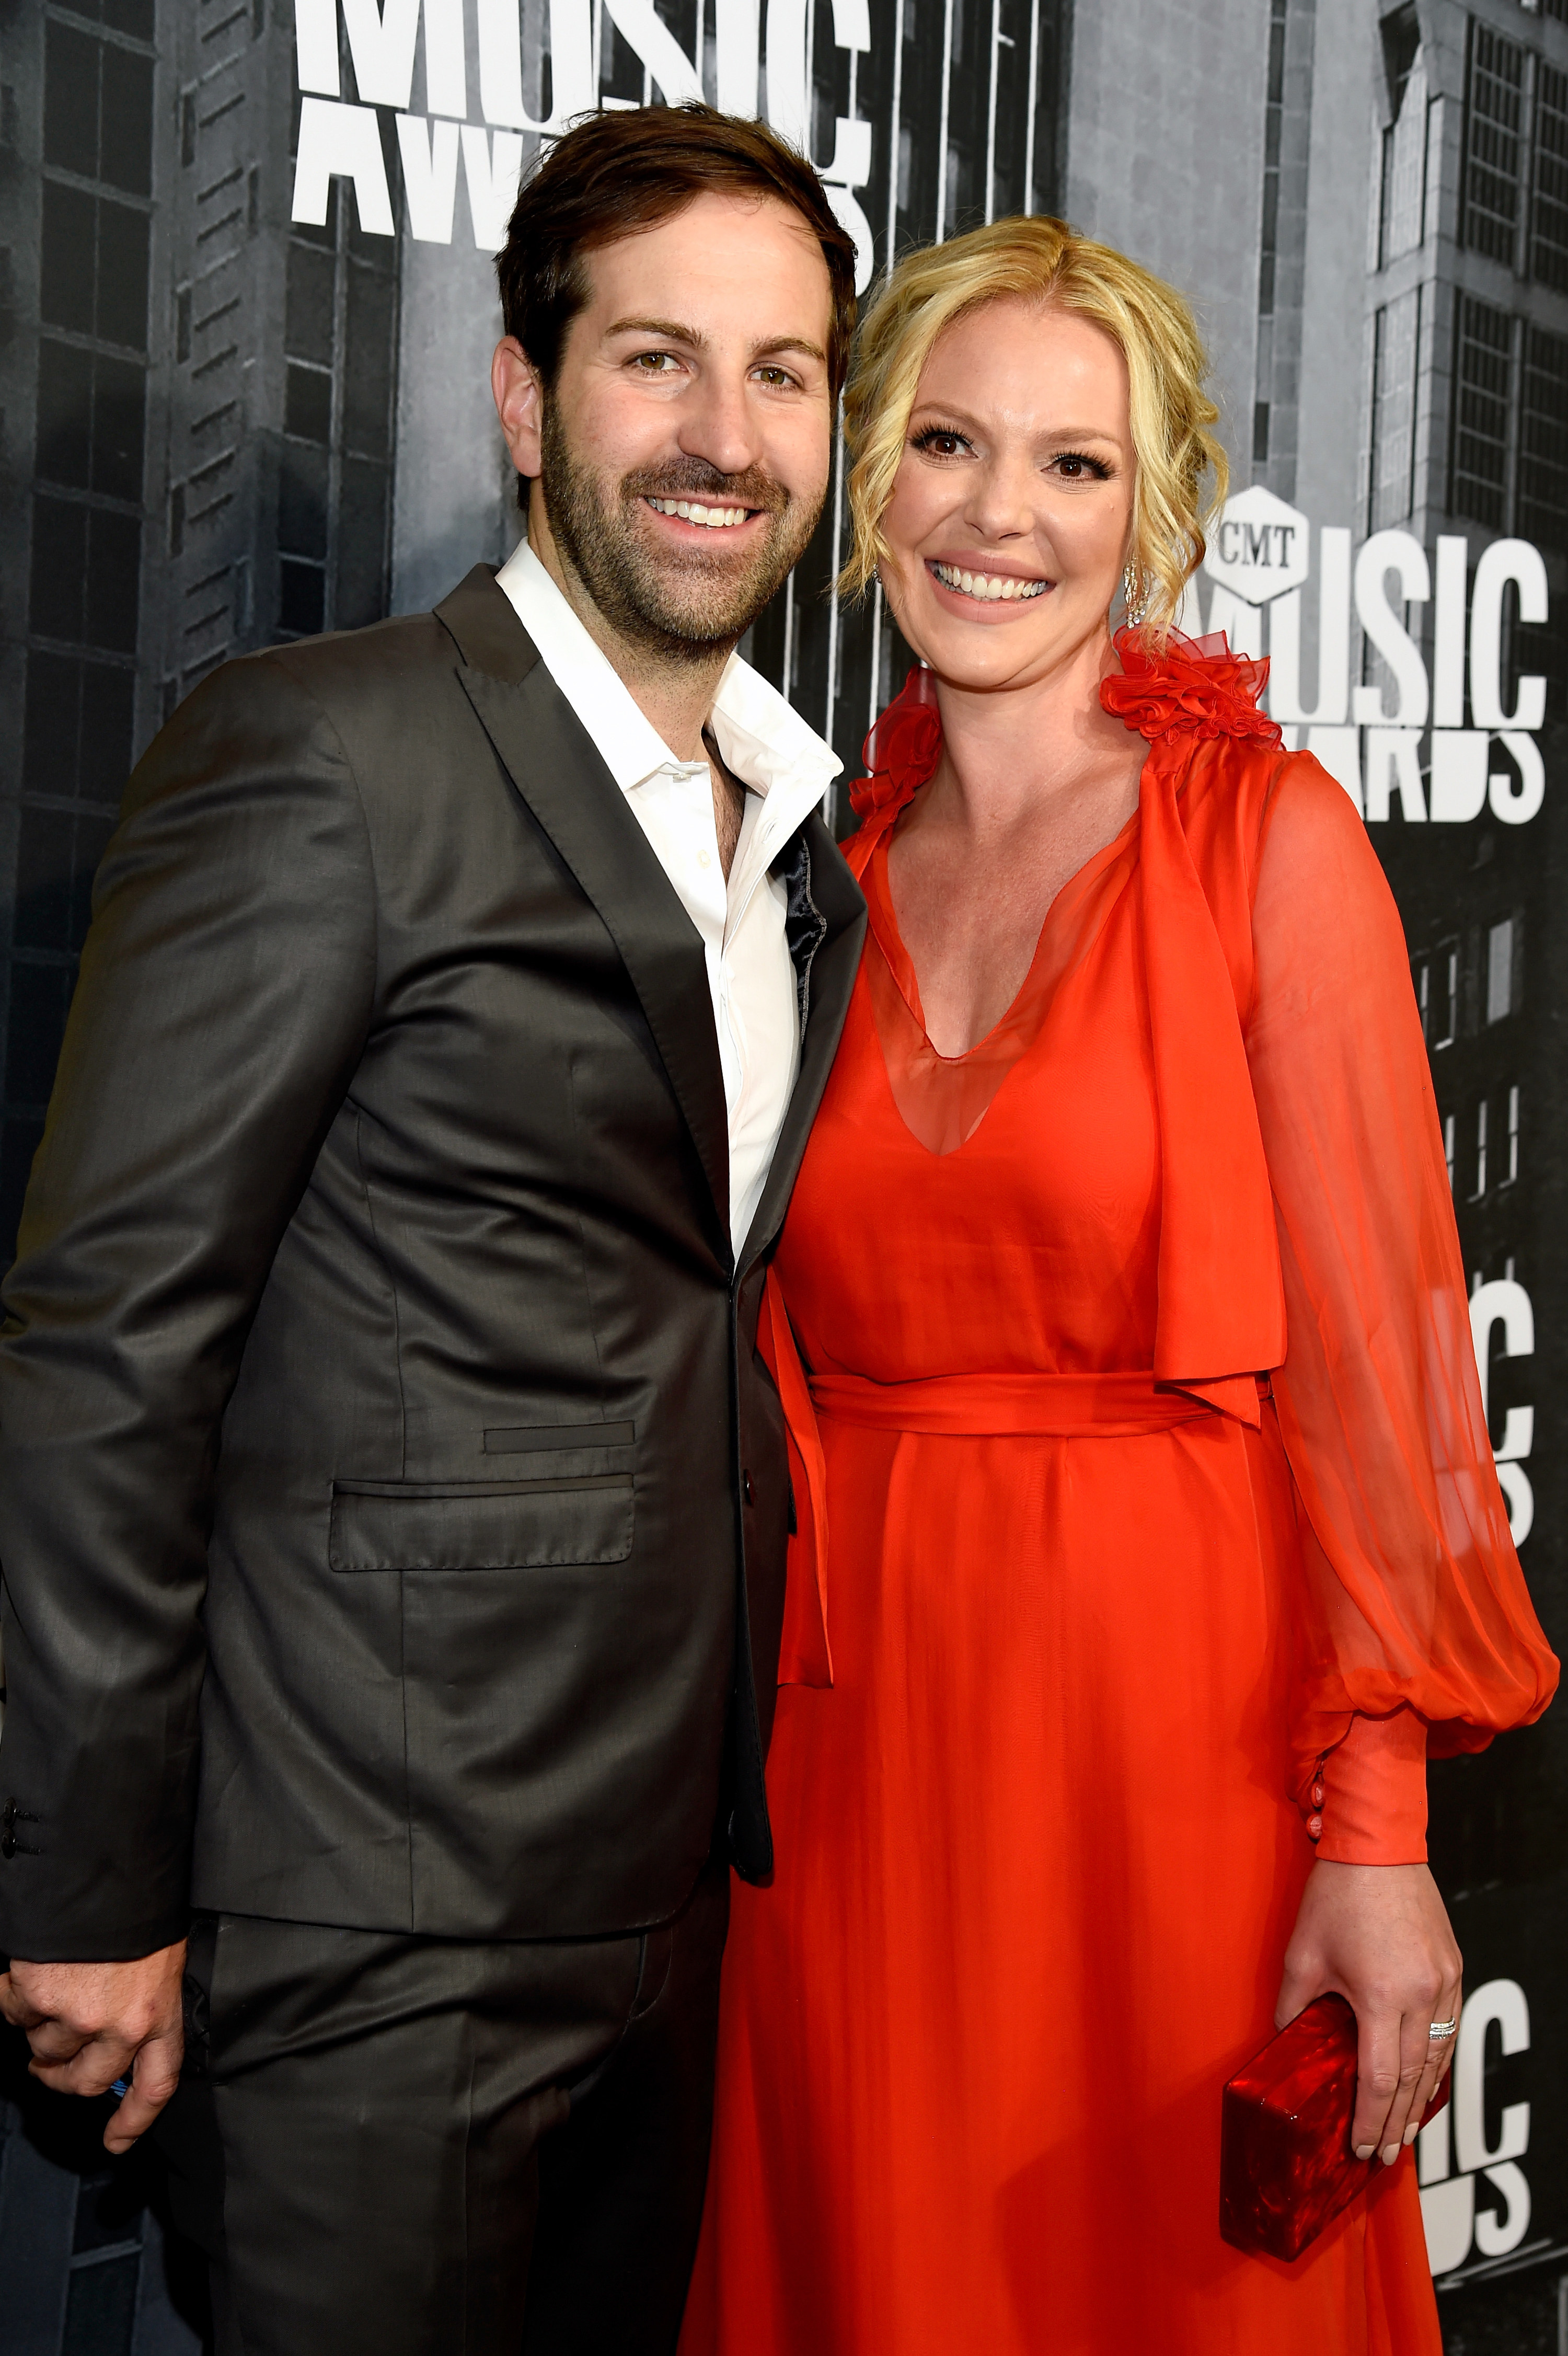 Josh Kelley and Katherine Heigl at the 2017 CMT Music Awards